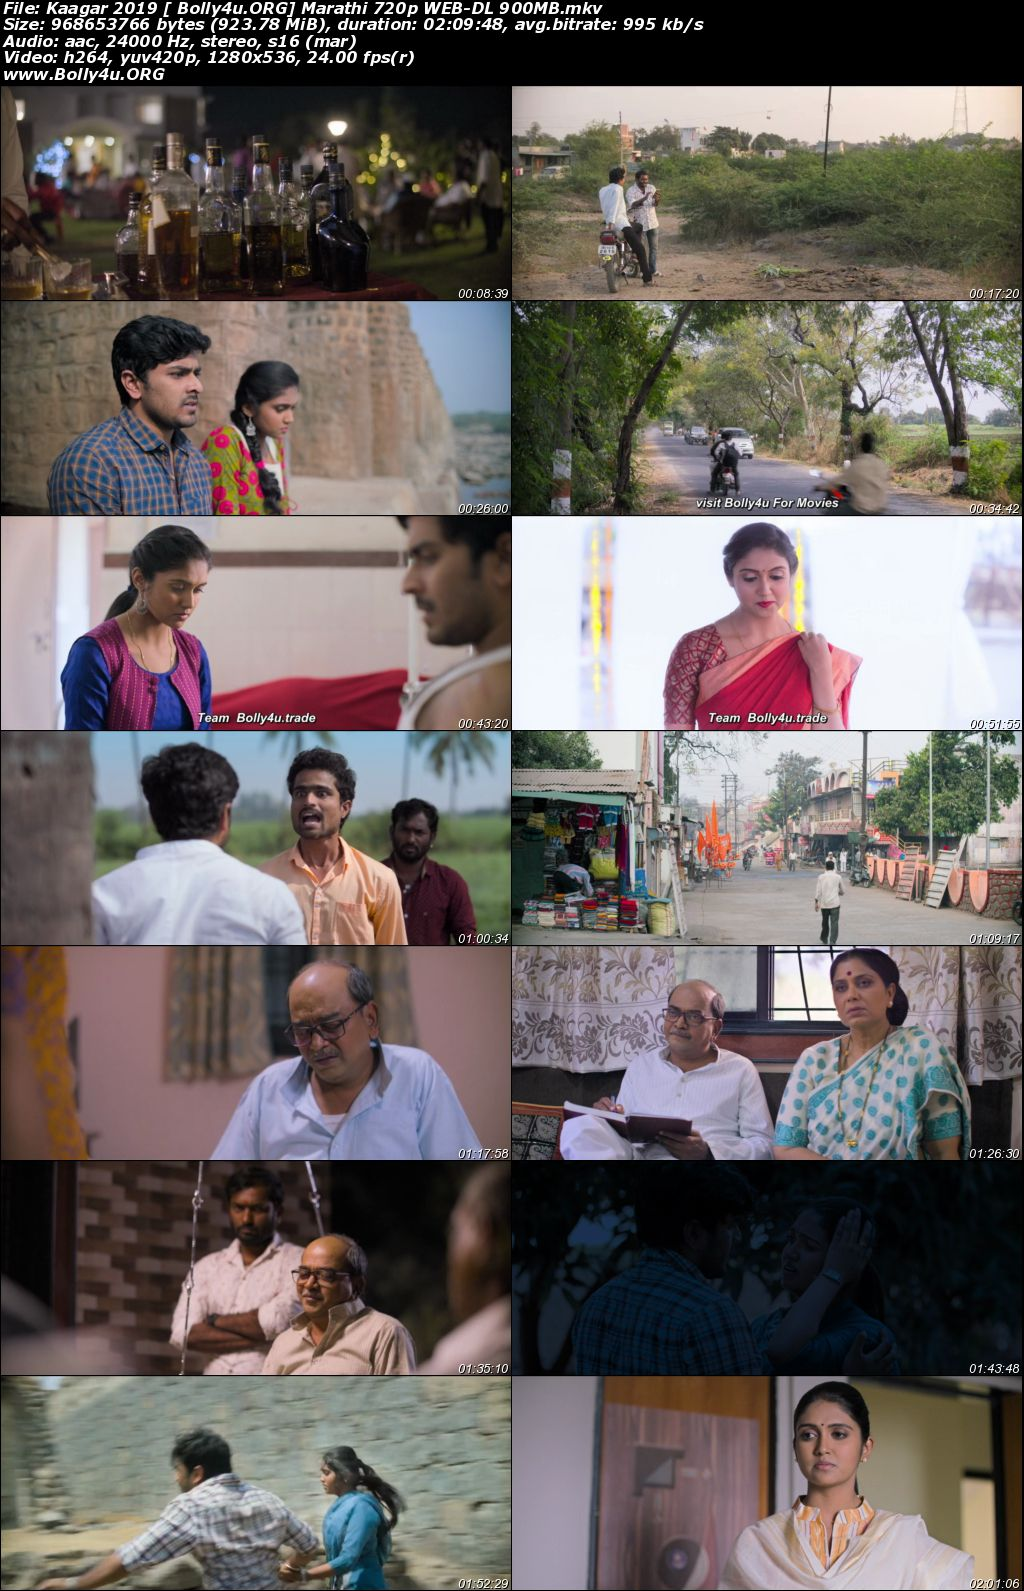 Kaagar 2019 WEB-DL 900MB Marathi 720p Download